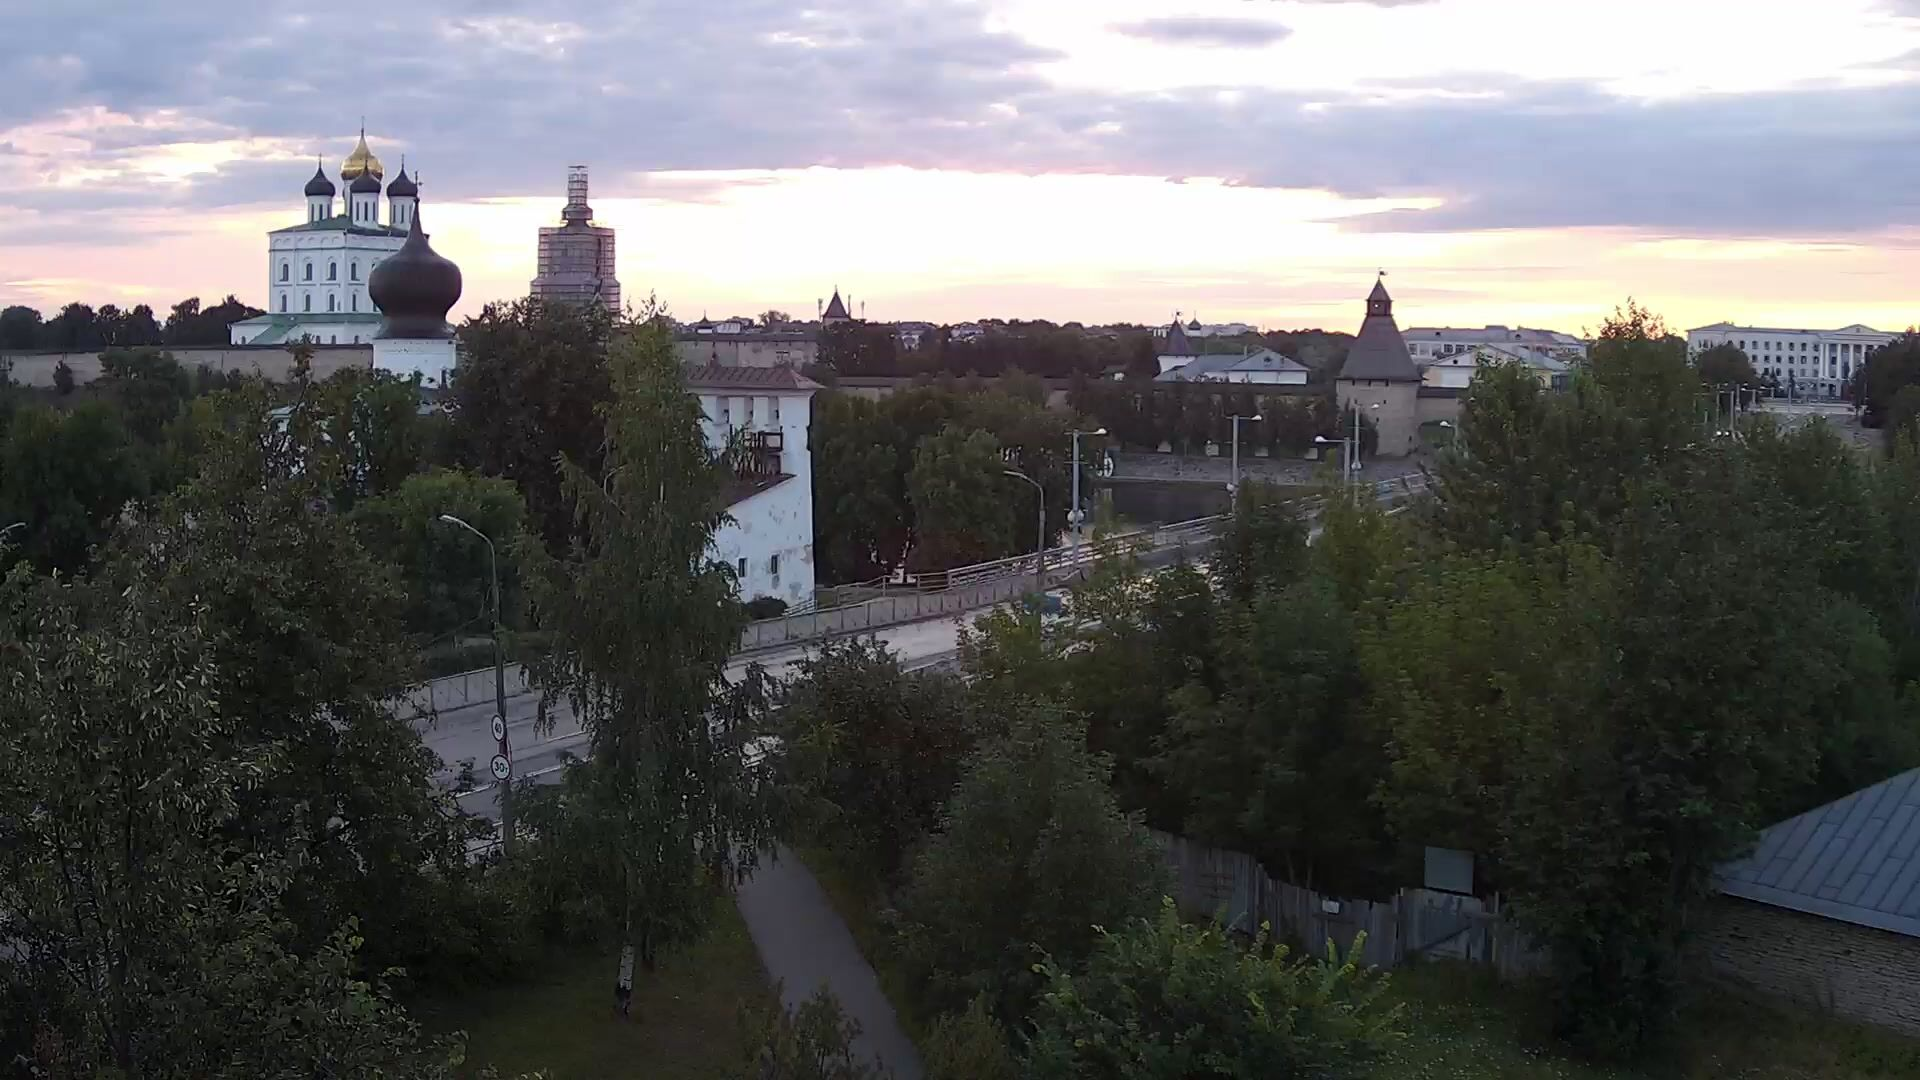 Webcam Olginskiy most, Pskov, Russia